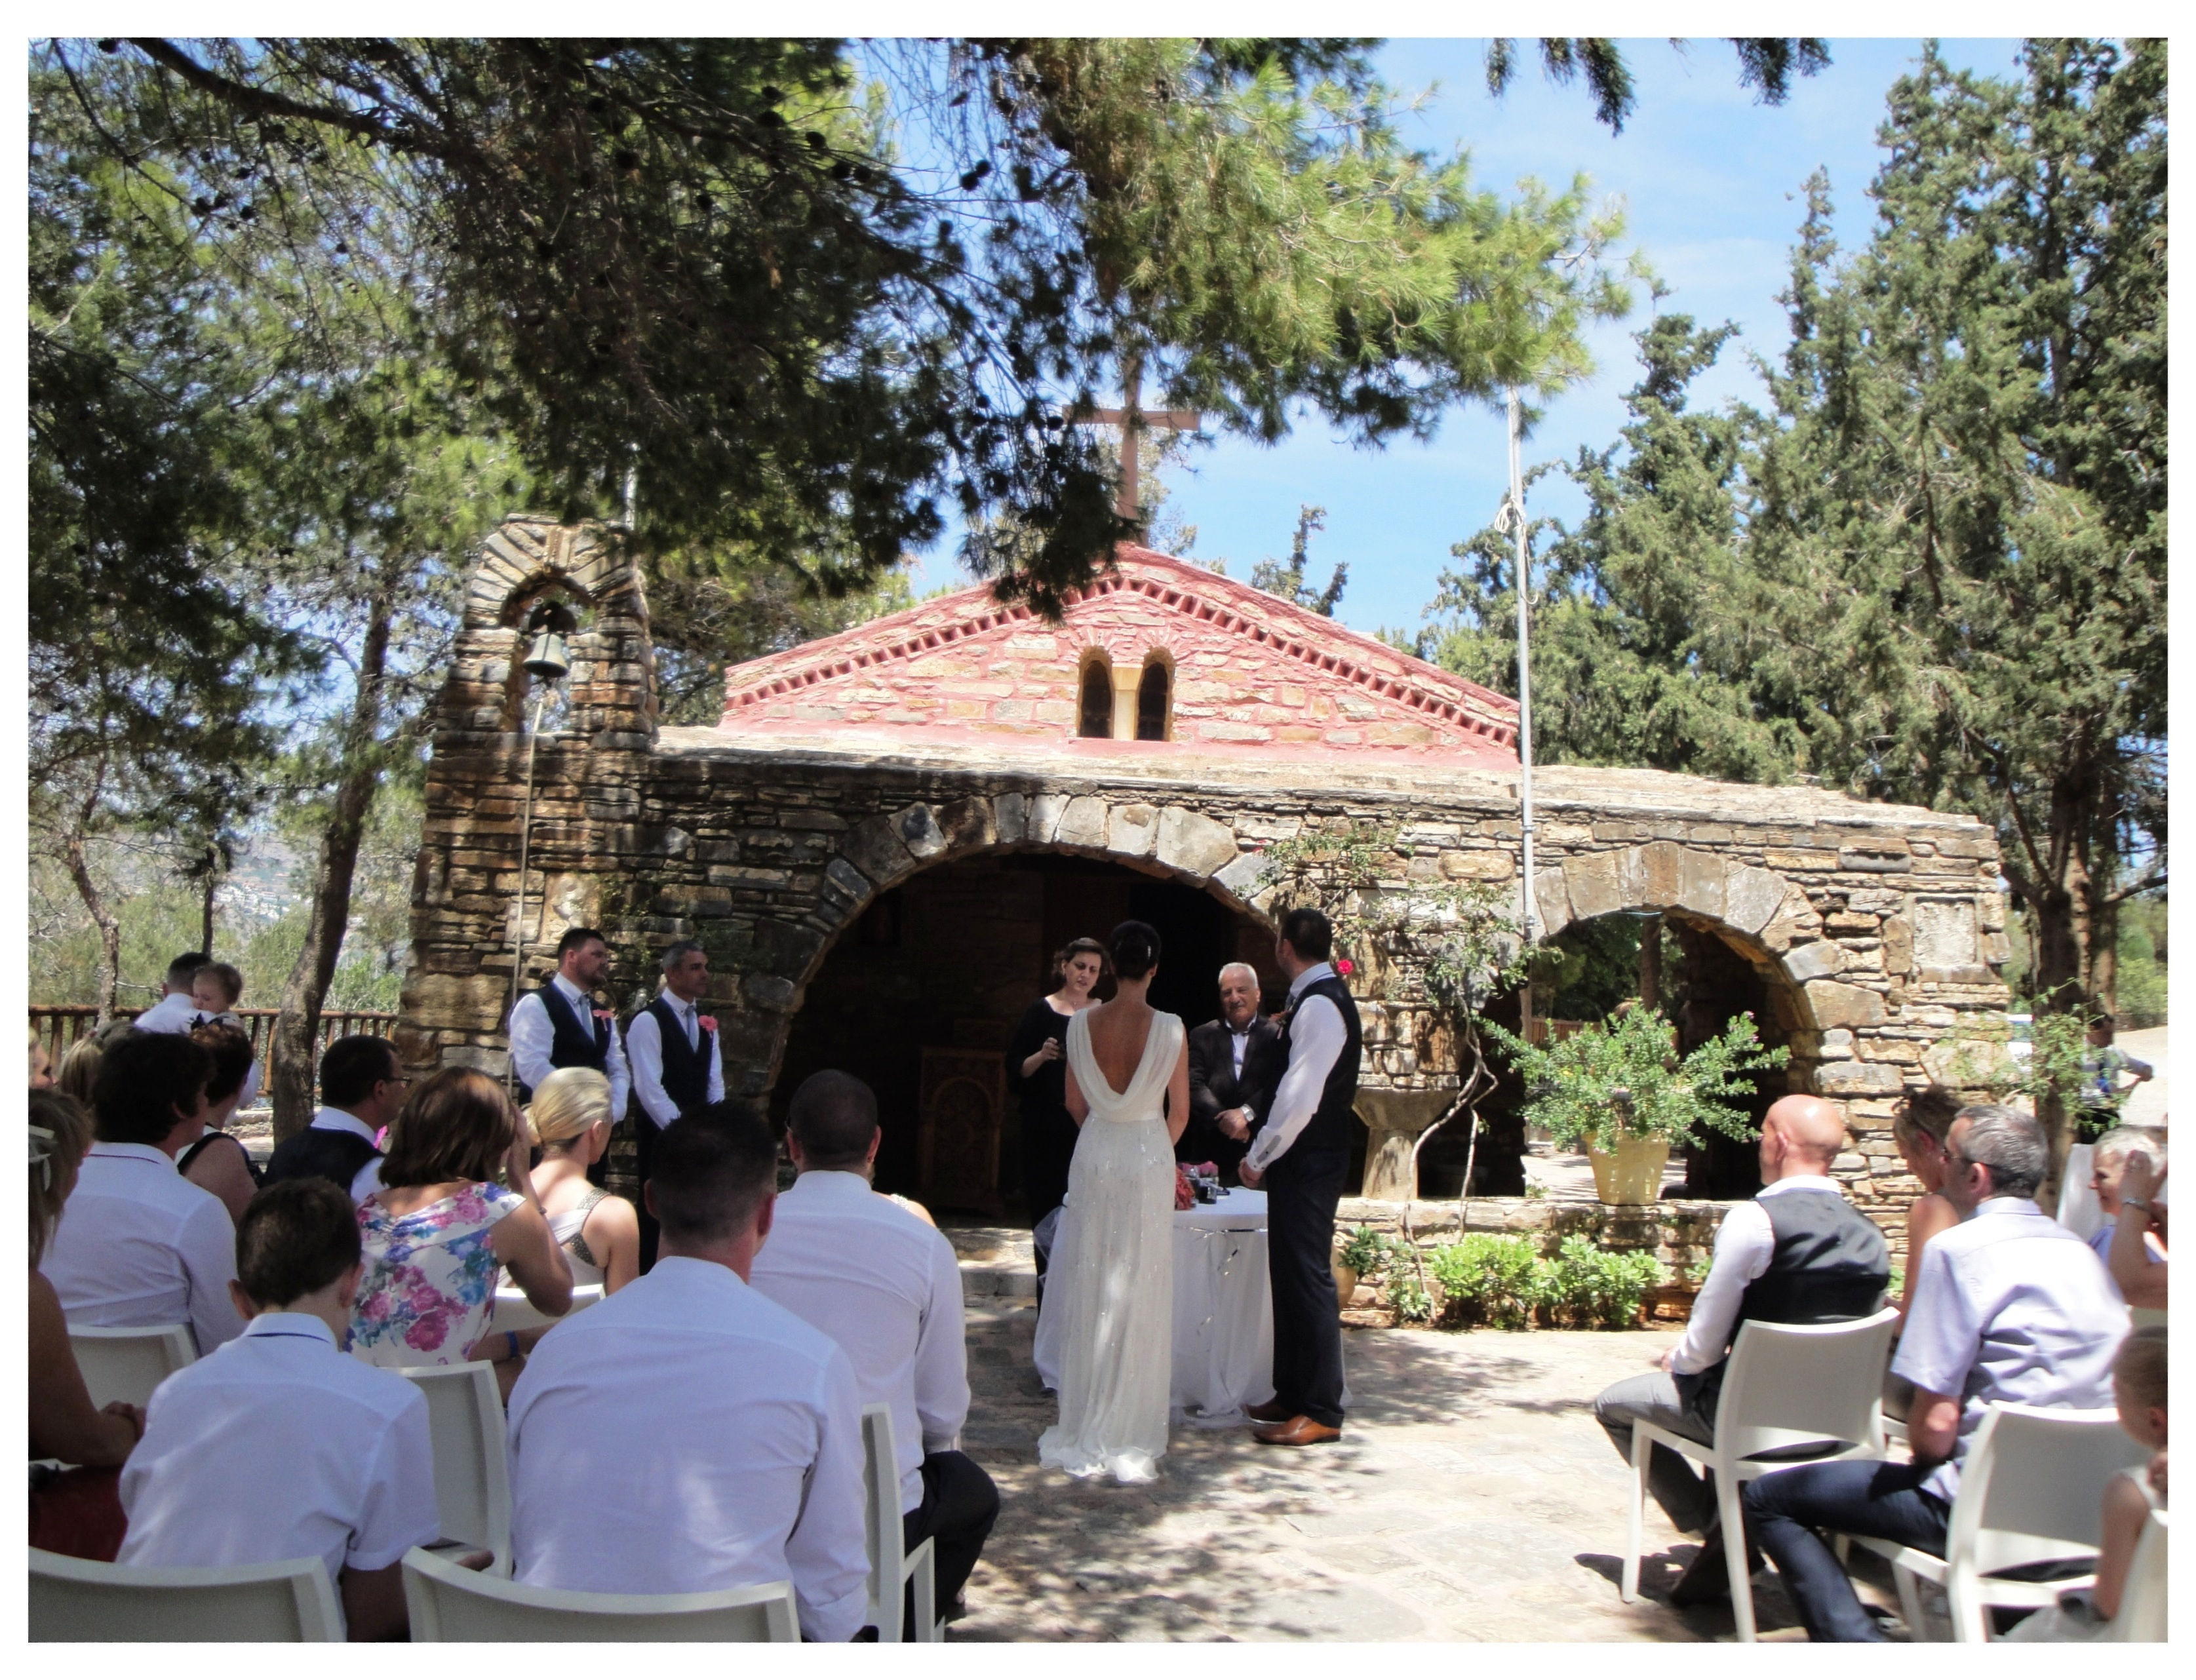 planning your event the crete wedding planner